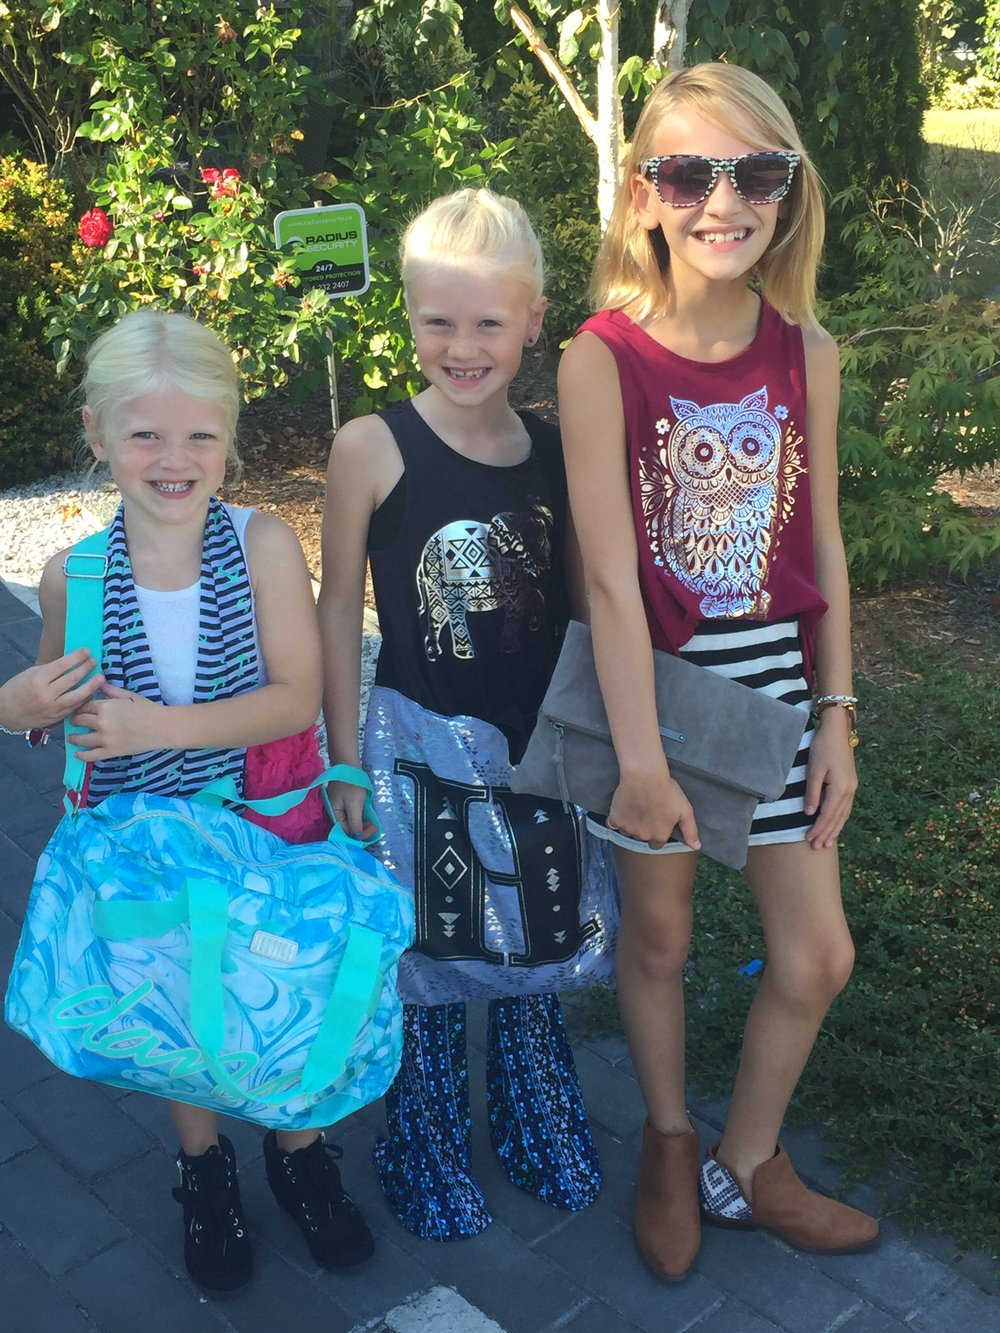 The girls were excited to shop for back to school clothes that weren't uniforms:)